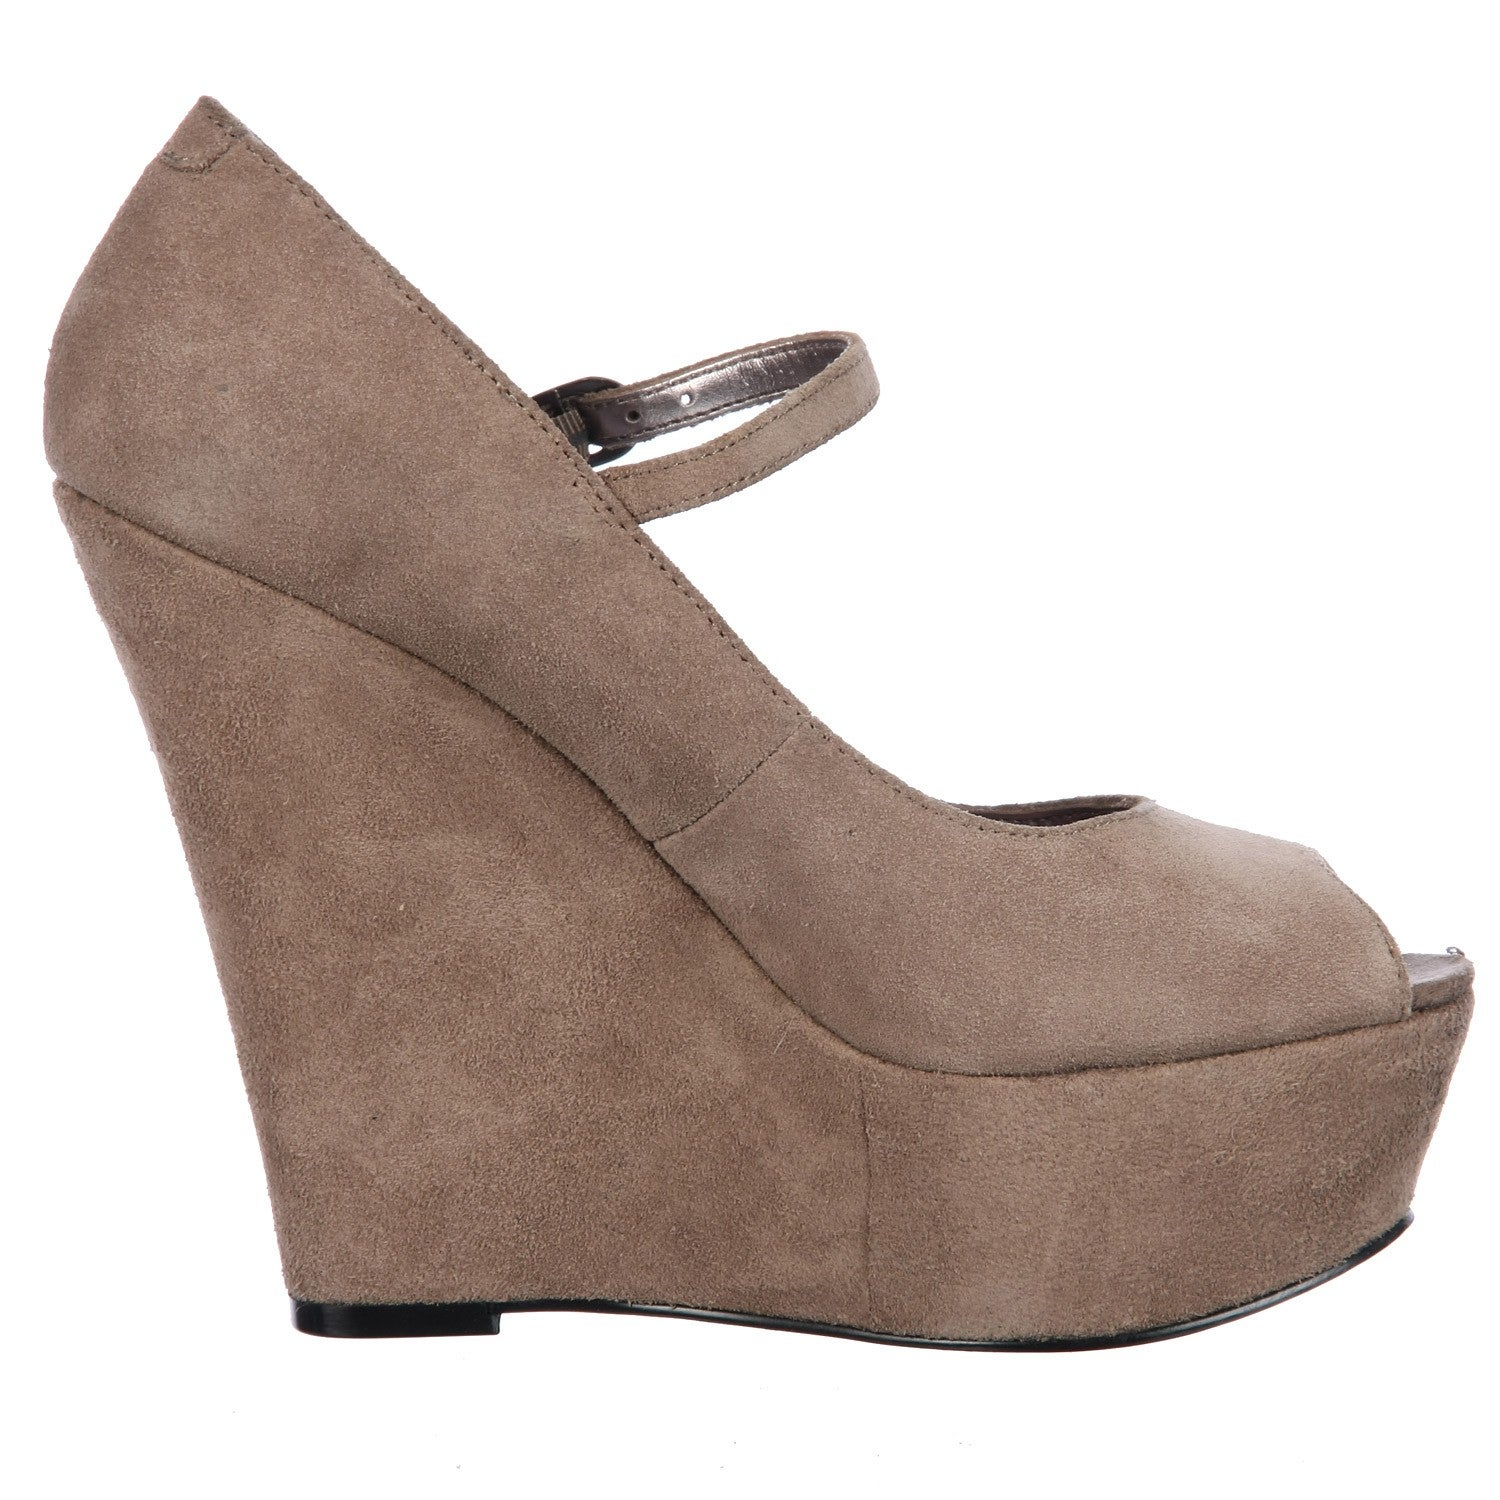 d80d443875f Shop Steve Madden Women s  P-Sofiaa  Taupe Suede Mary Jane Wedges - Free  Shipping On Orders Over  45 - Overstock - 6023631